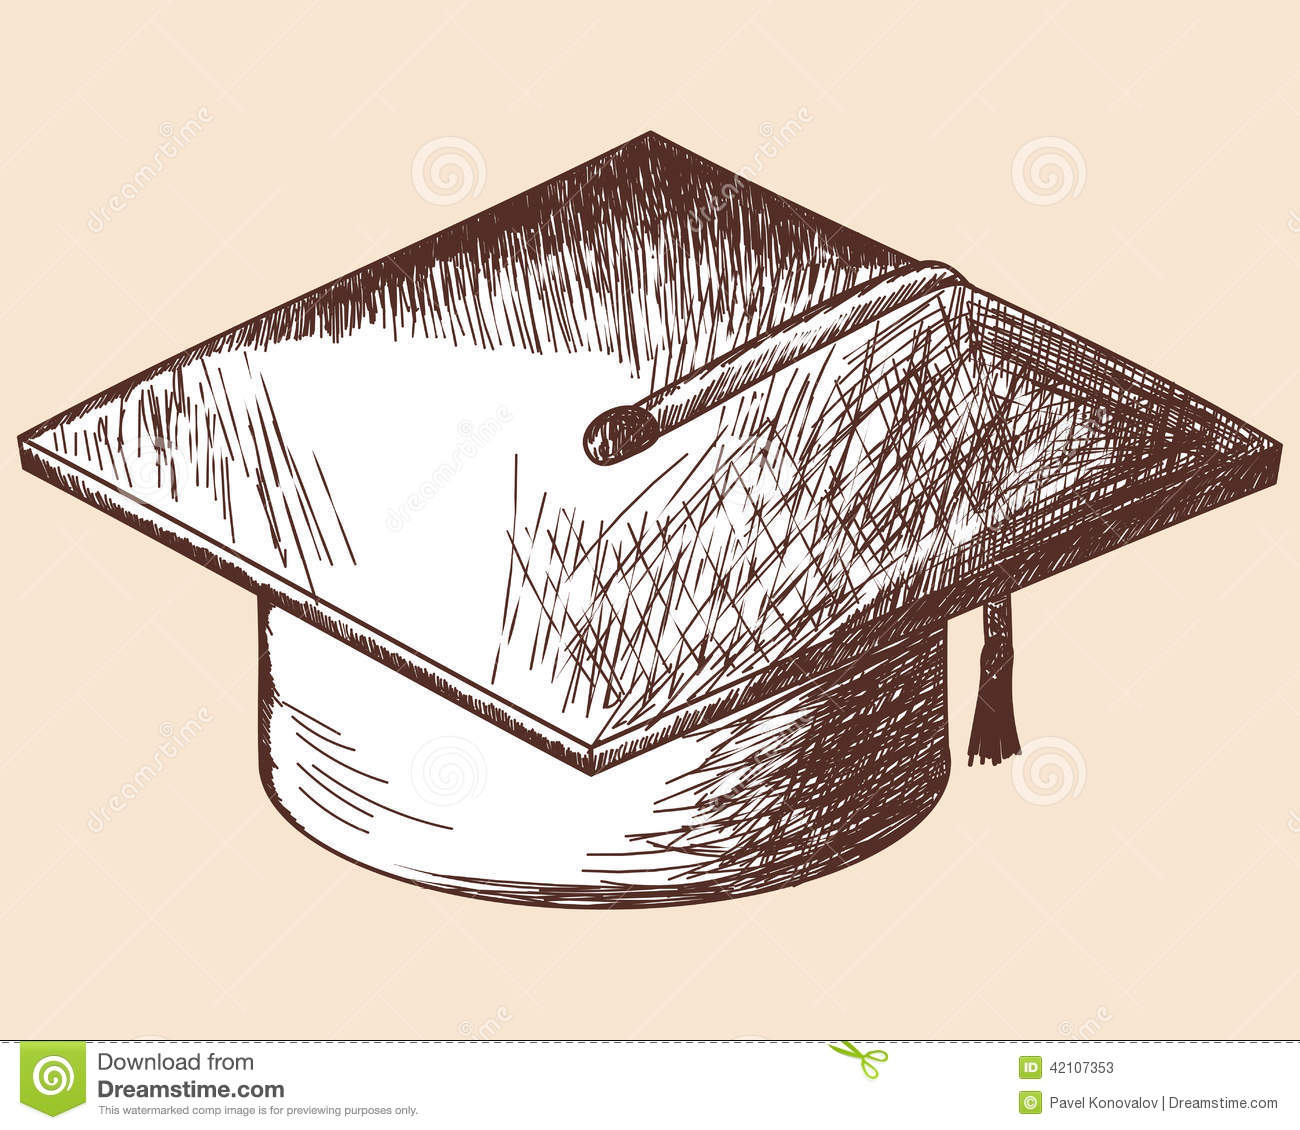 Graduation cap sketch. EPS 10 vector illustration without transparency ...